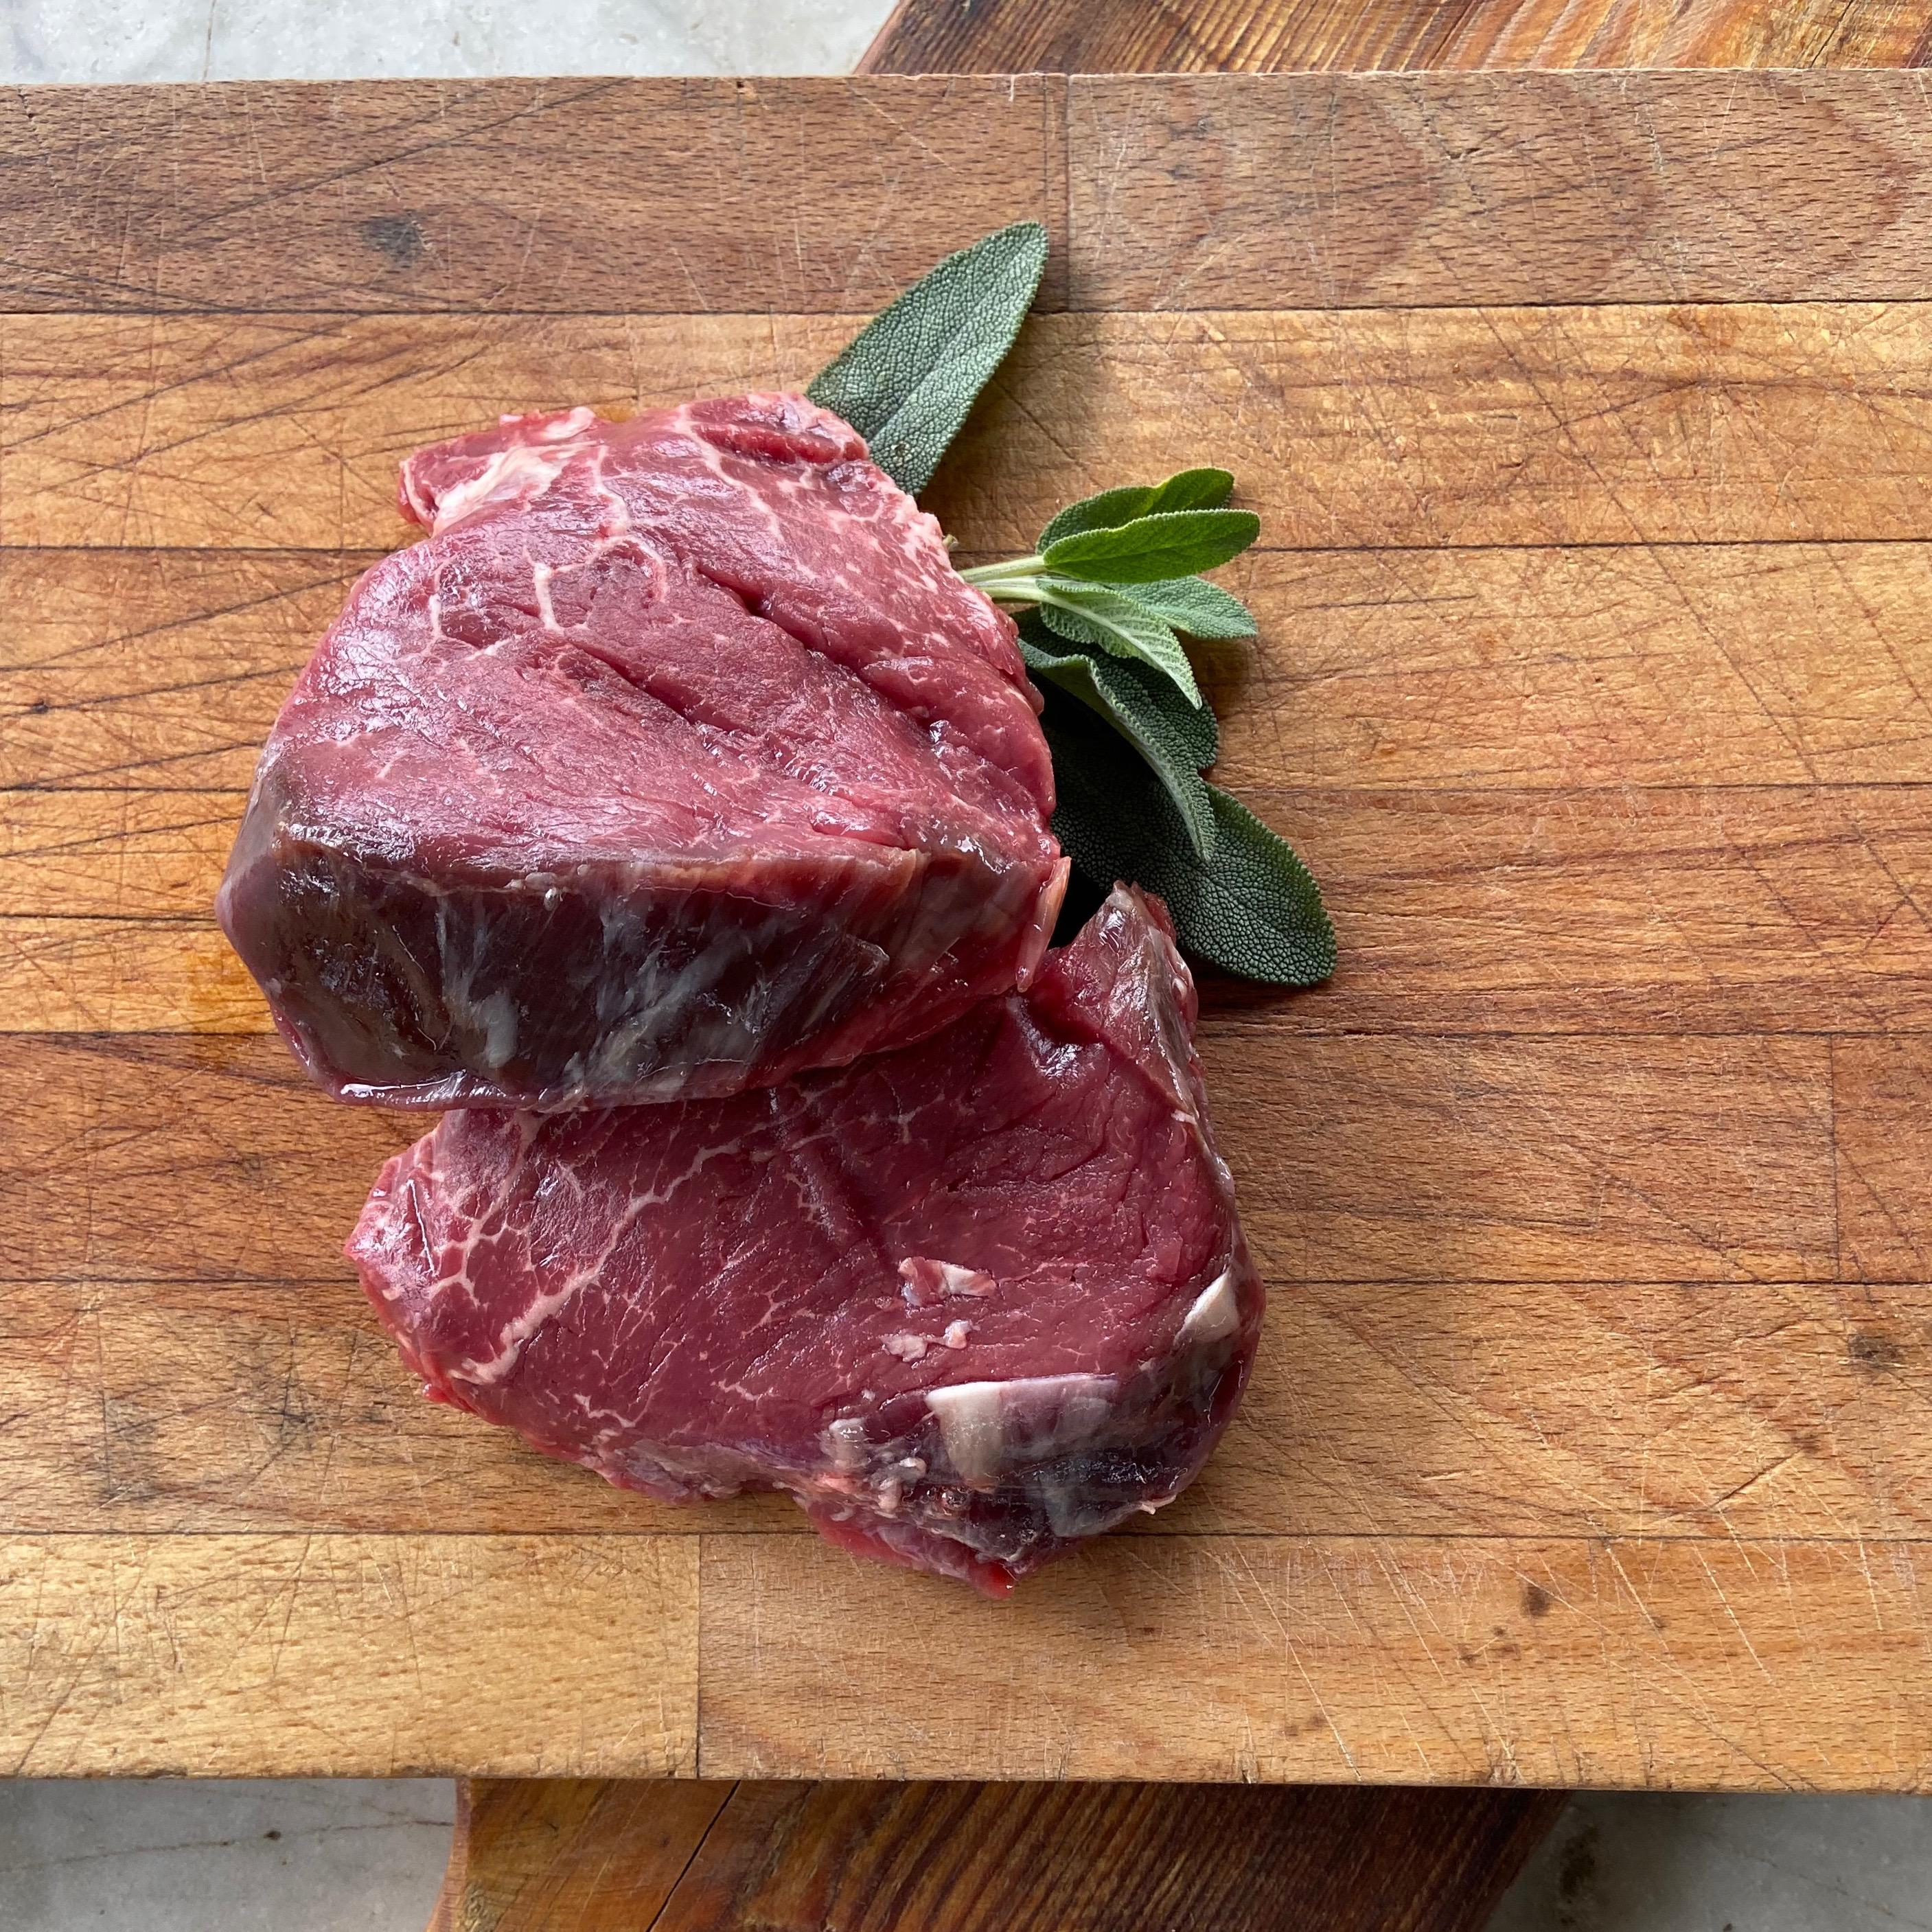 Organic, 100% grass fed fillet steak from Longhorn beef